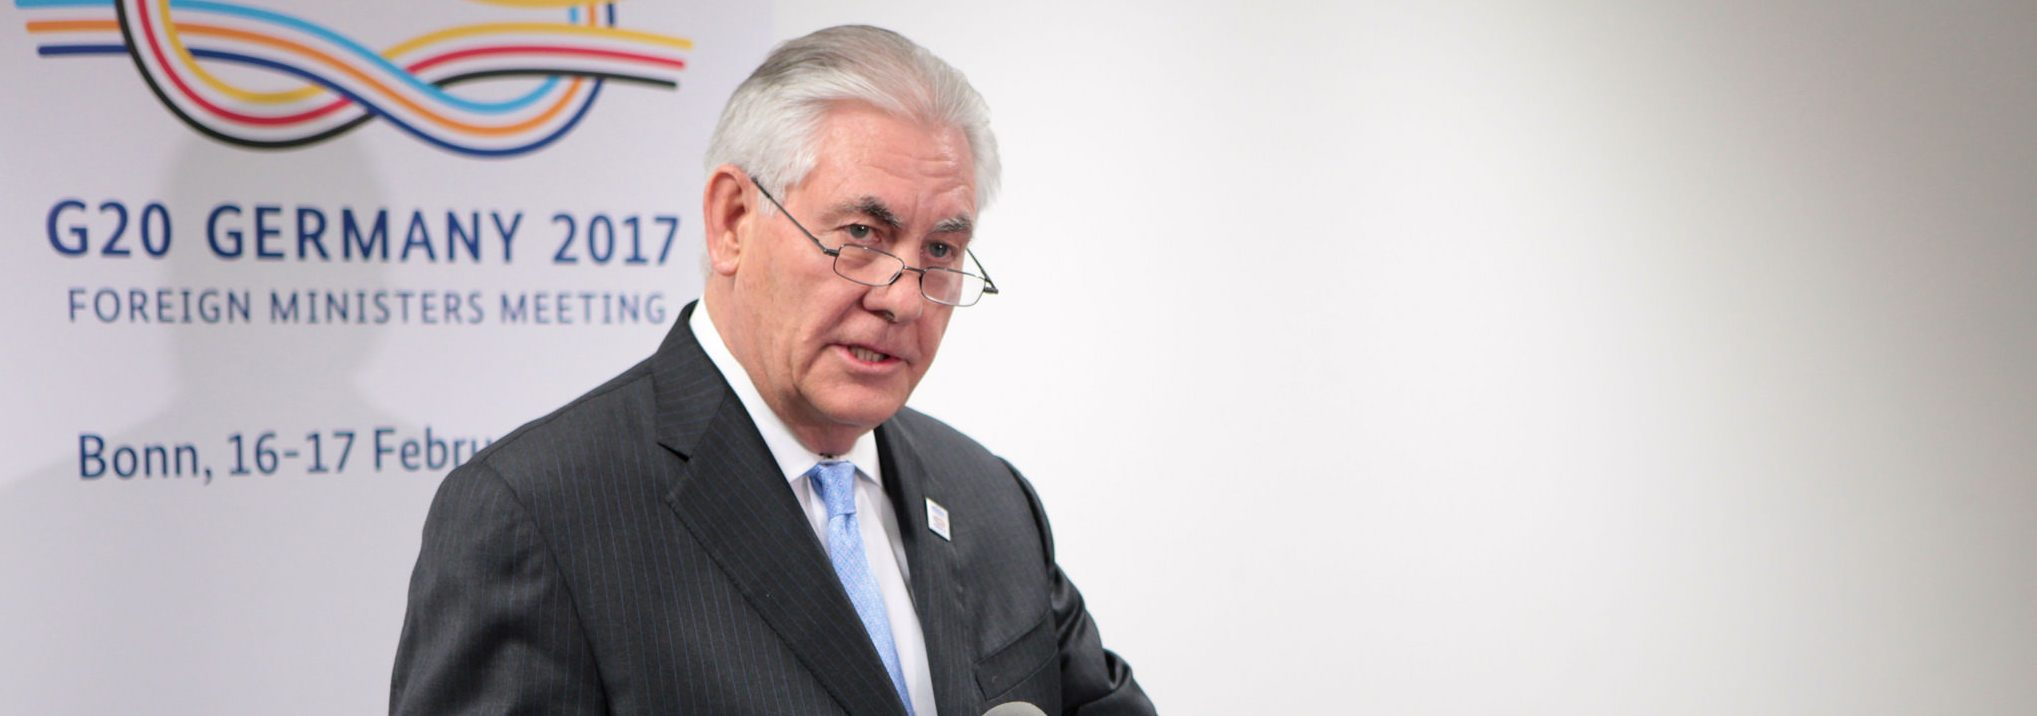 U.S. Secretary of State Rex Tillerson addresses reporters following his bilateral meeting with Russian Foreign Minister Sergey Lavrov on the sidelines of the G-20 Foreign Ministers' Meeting in Bonn, Germany, on February 16, 2017. This is his first official trip as Secretary of State. [State Department photo/ Public Domain]State Department photo/ Public Domain]